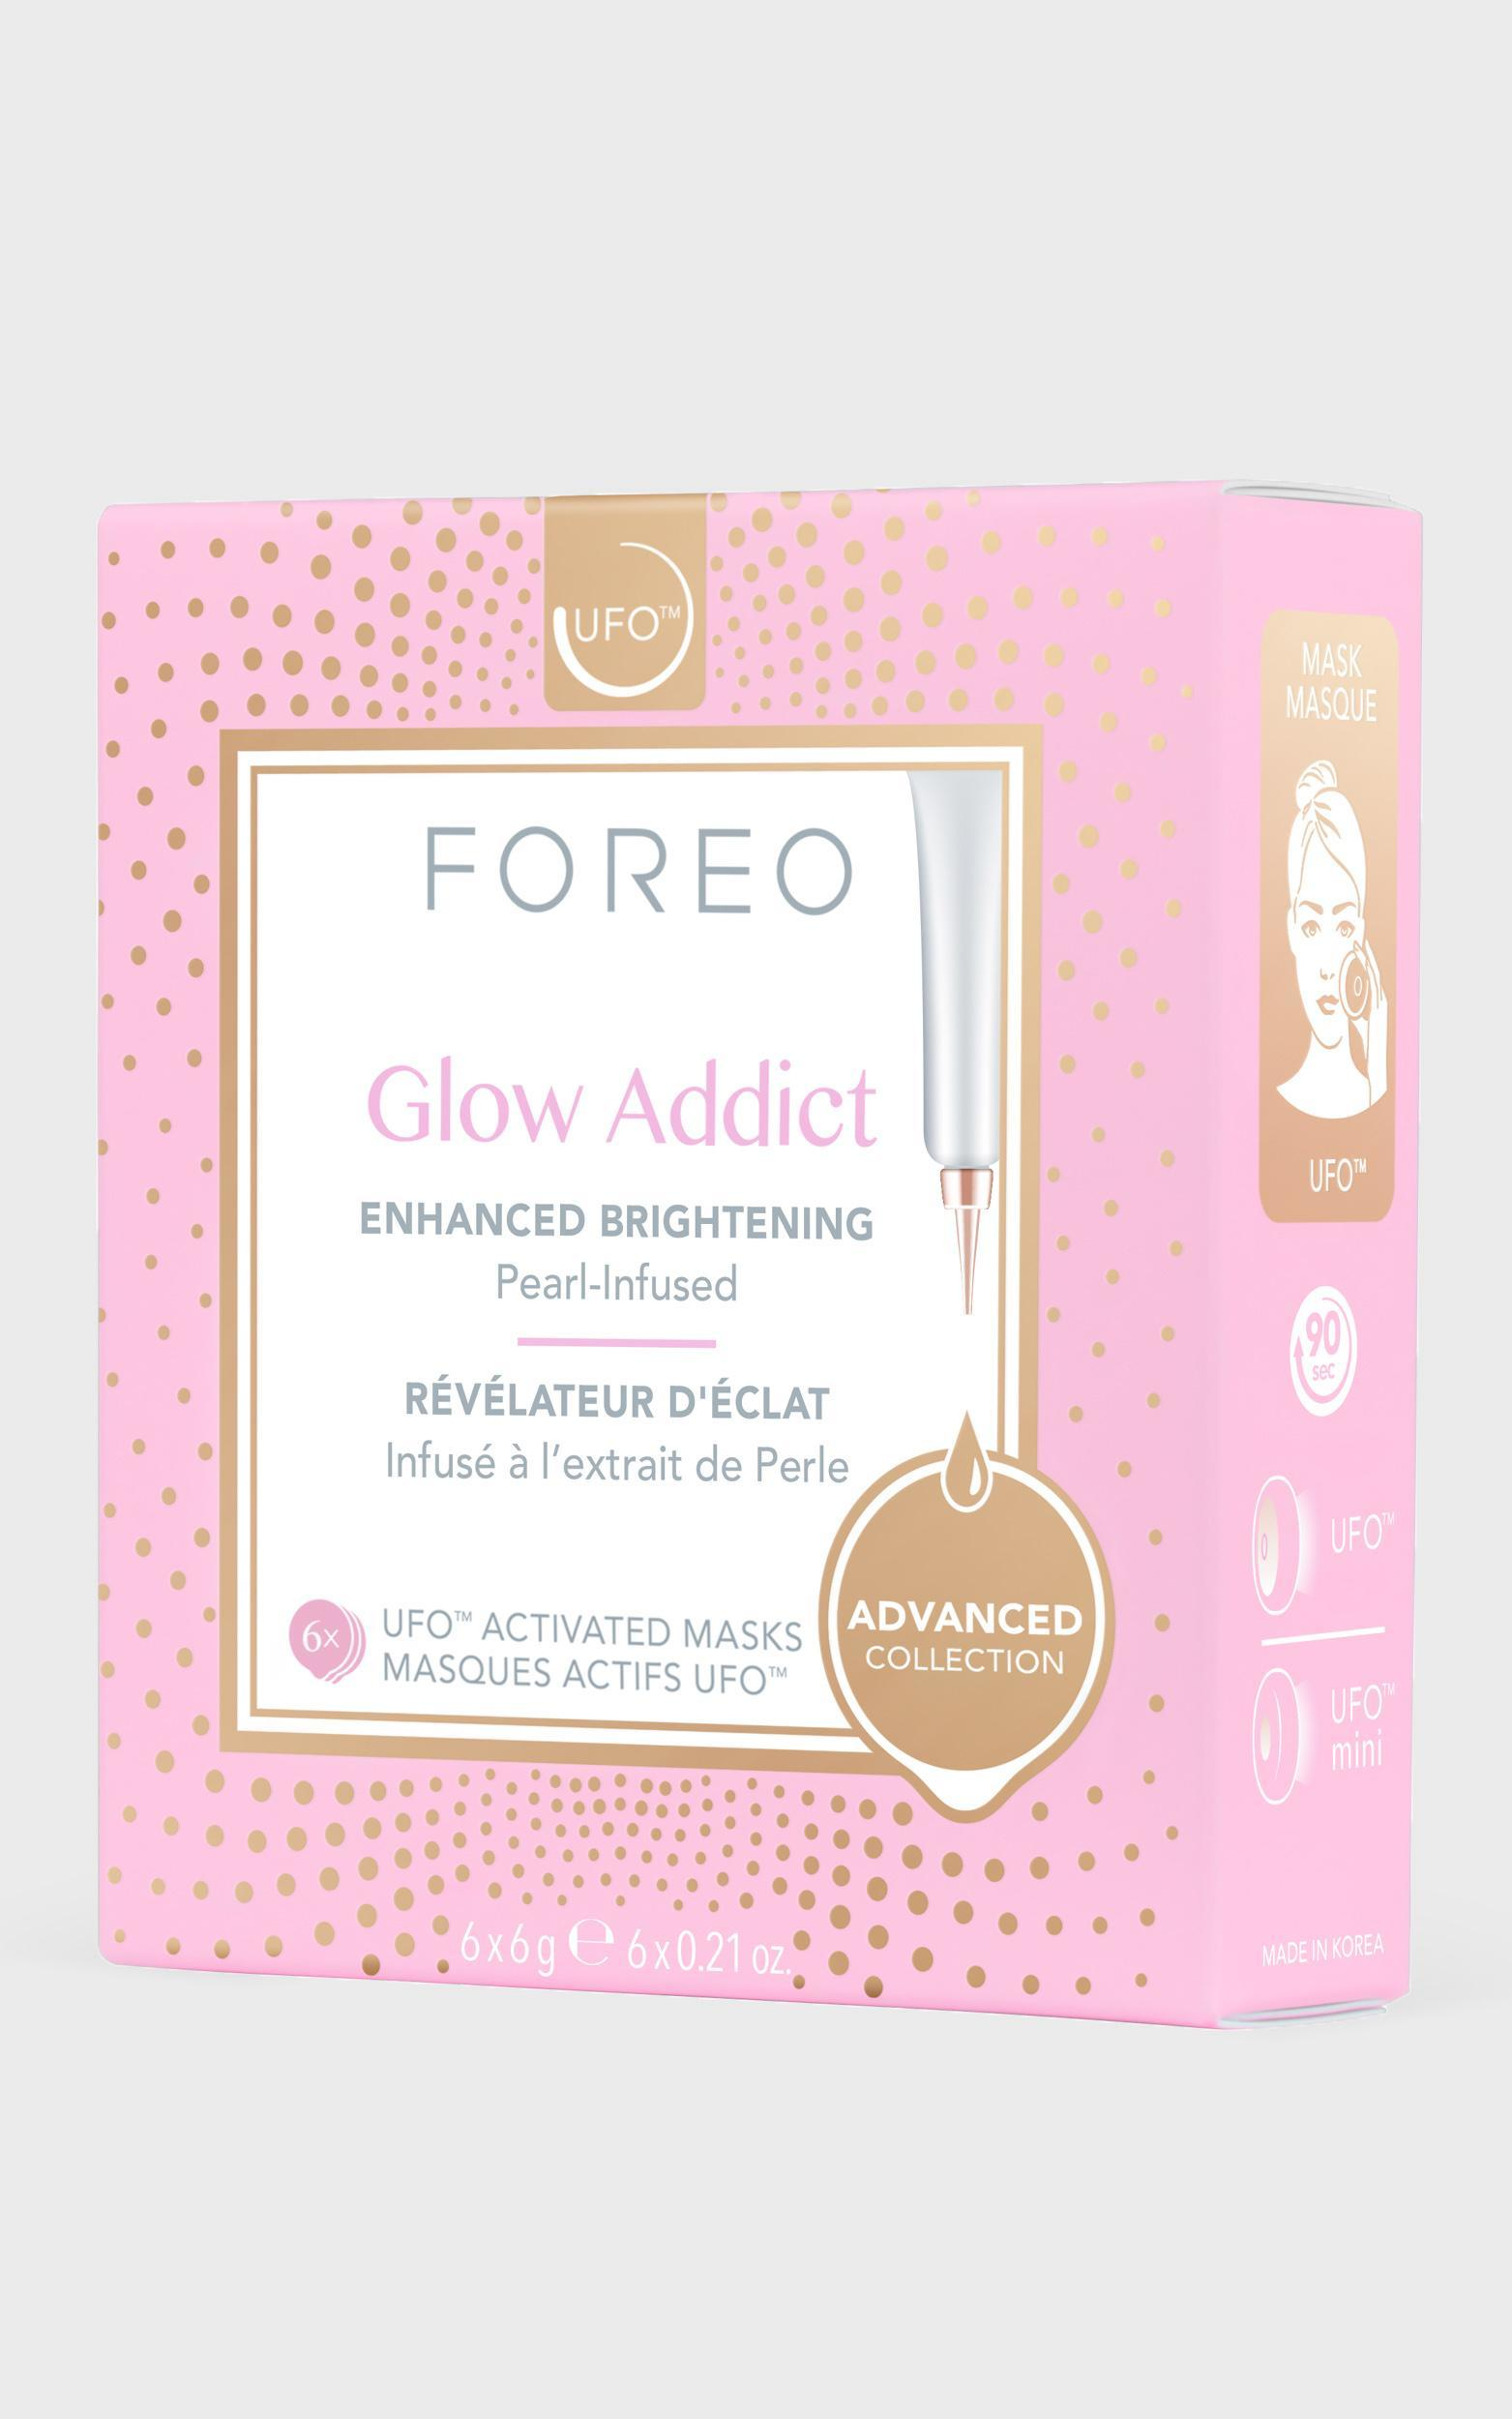 Foreo - UFO Masks Glow Addict - Pack of 6 , , hi-res image number null